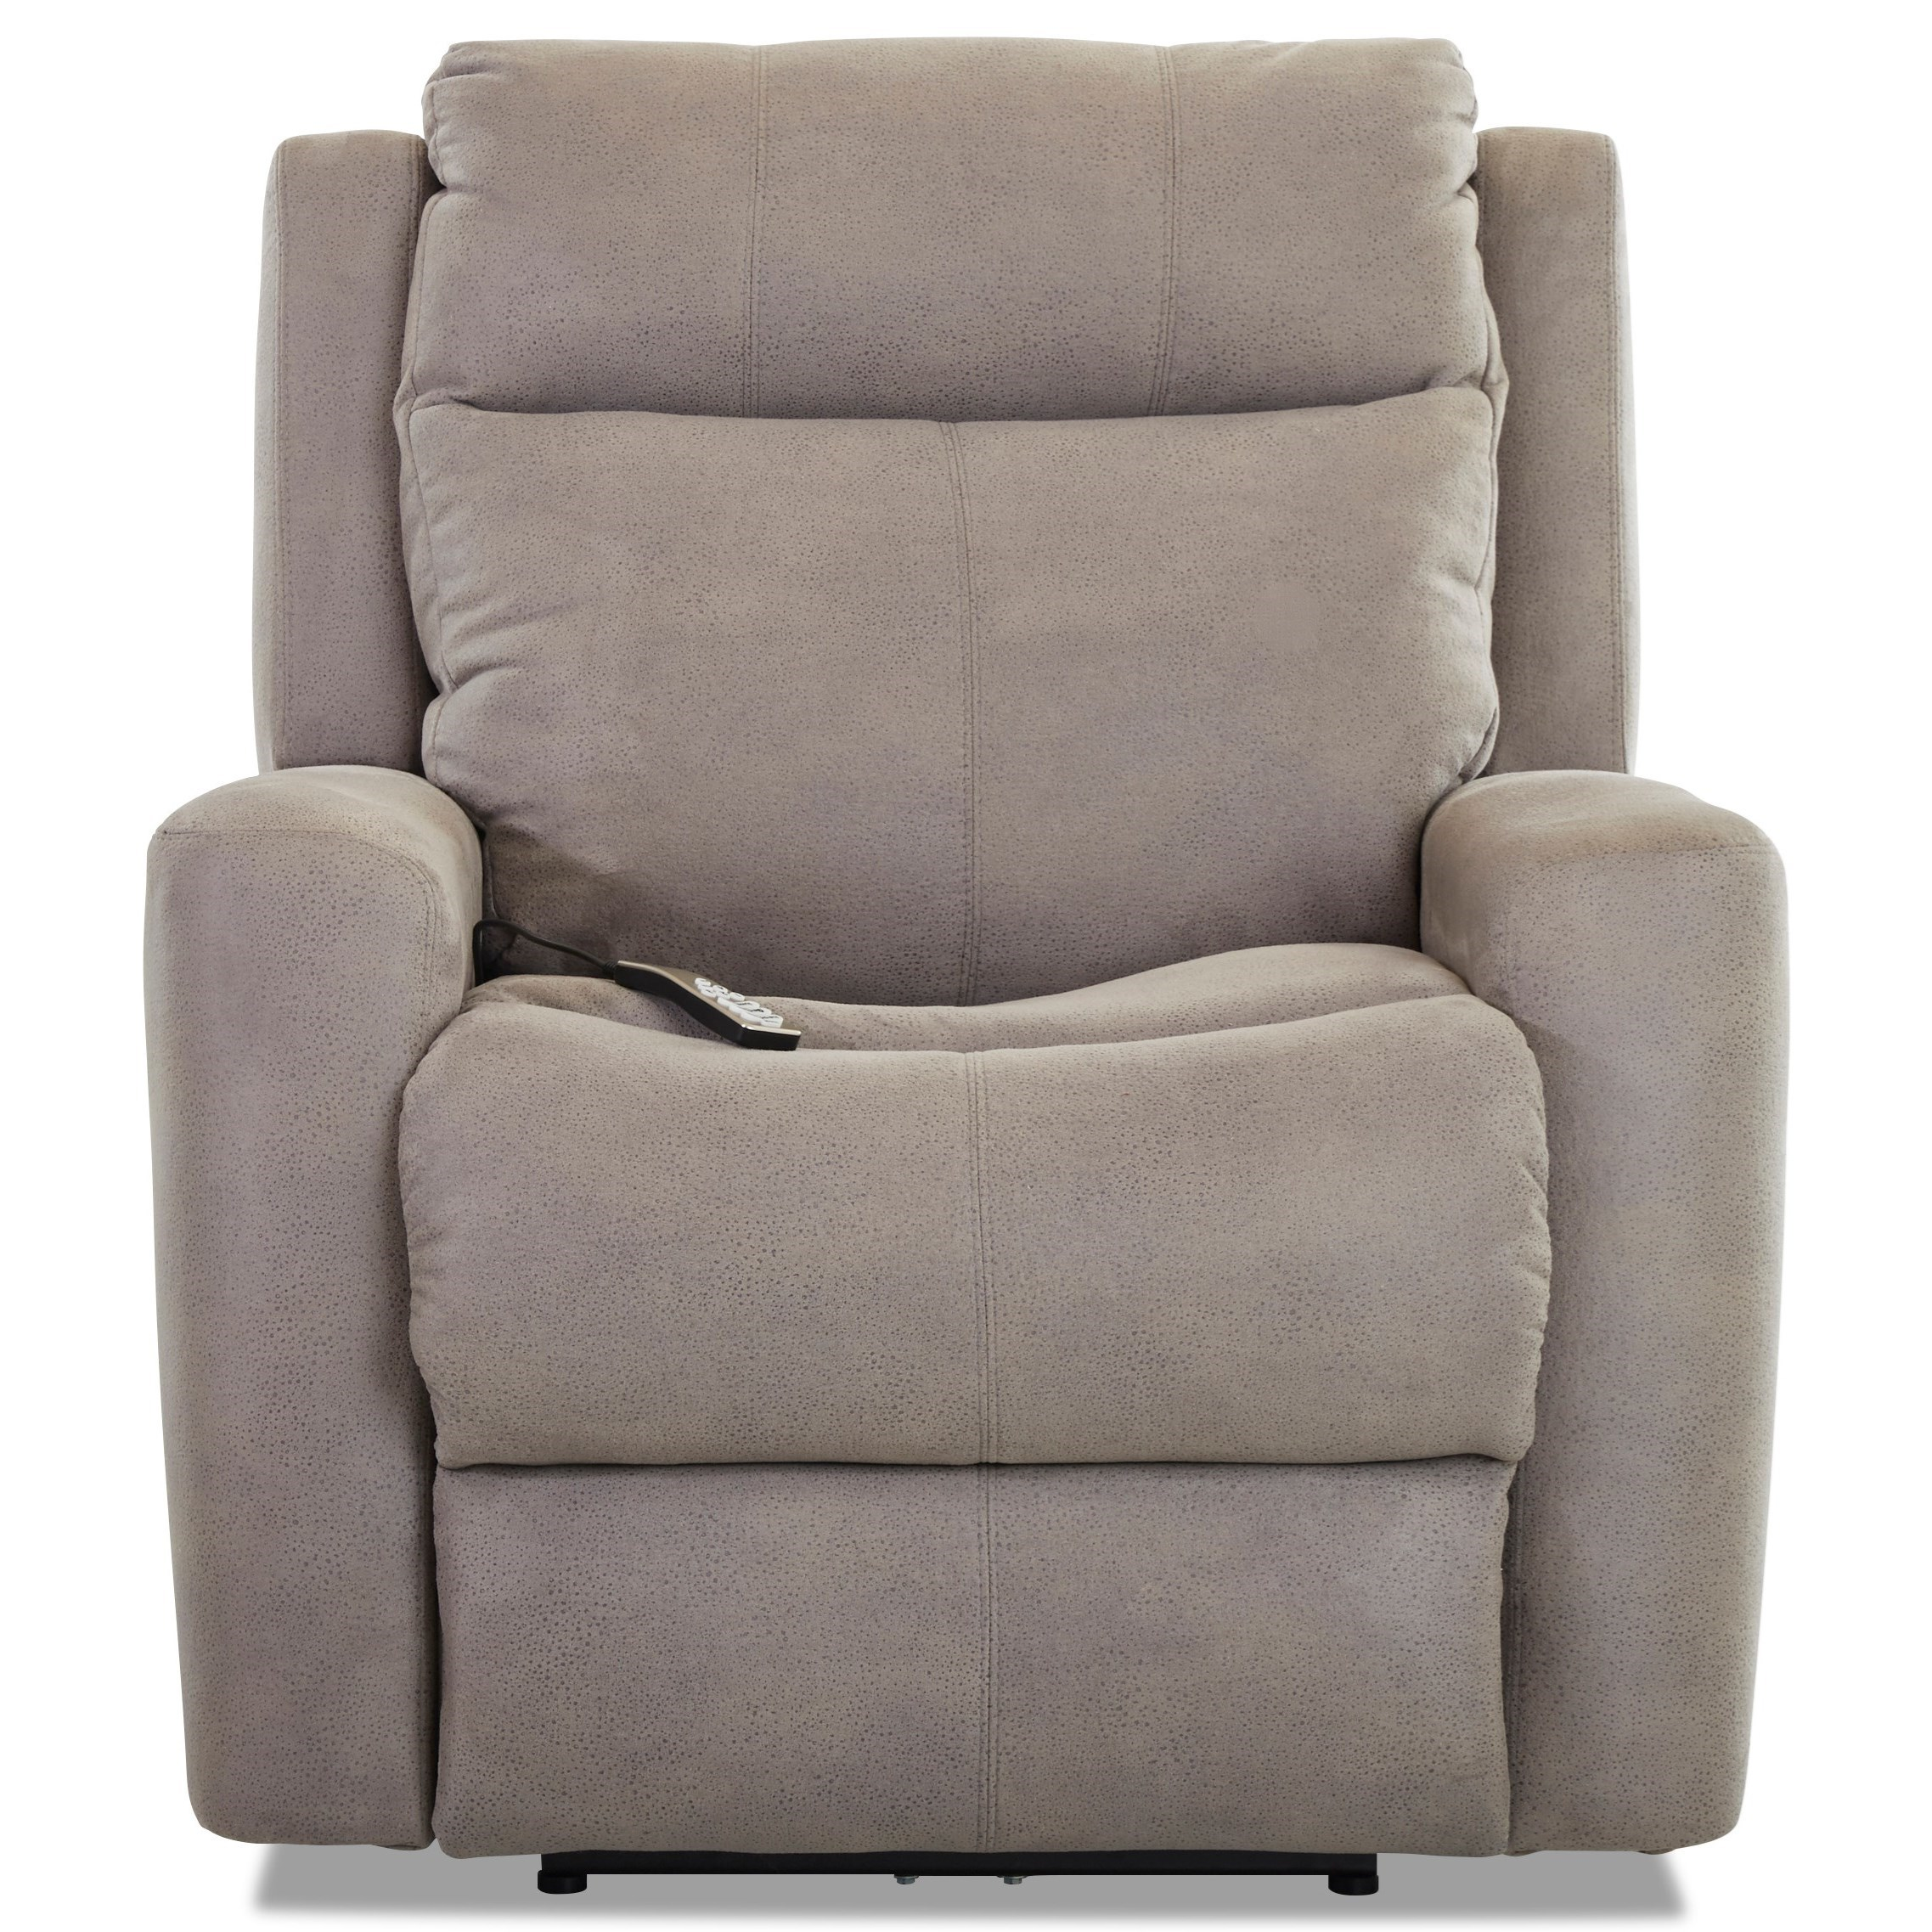 Brooks Power Recliner w/ Pwr Headrest & Massage by Klaussner at Johnny Janosik